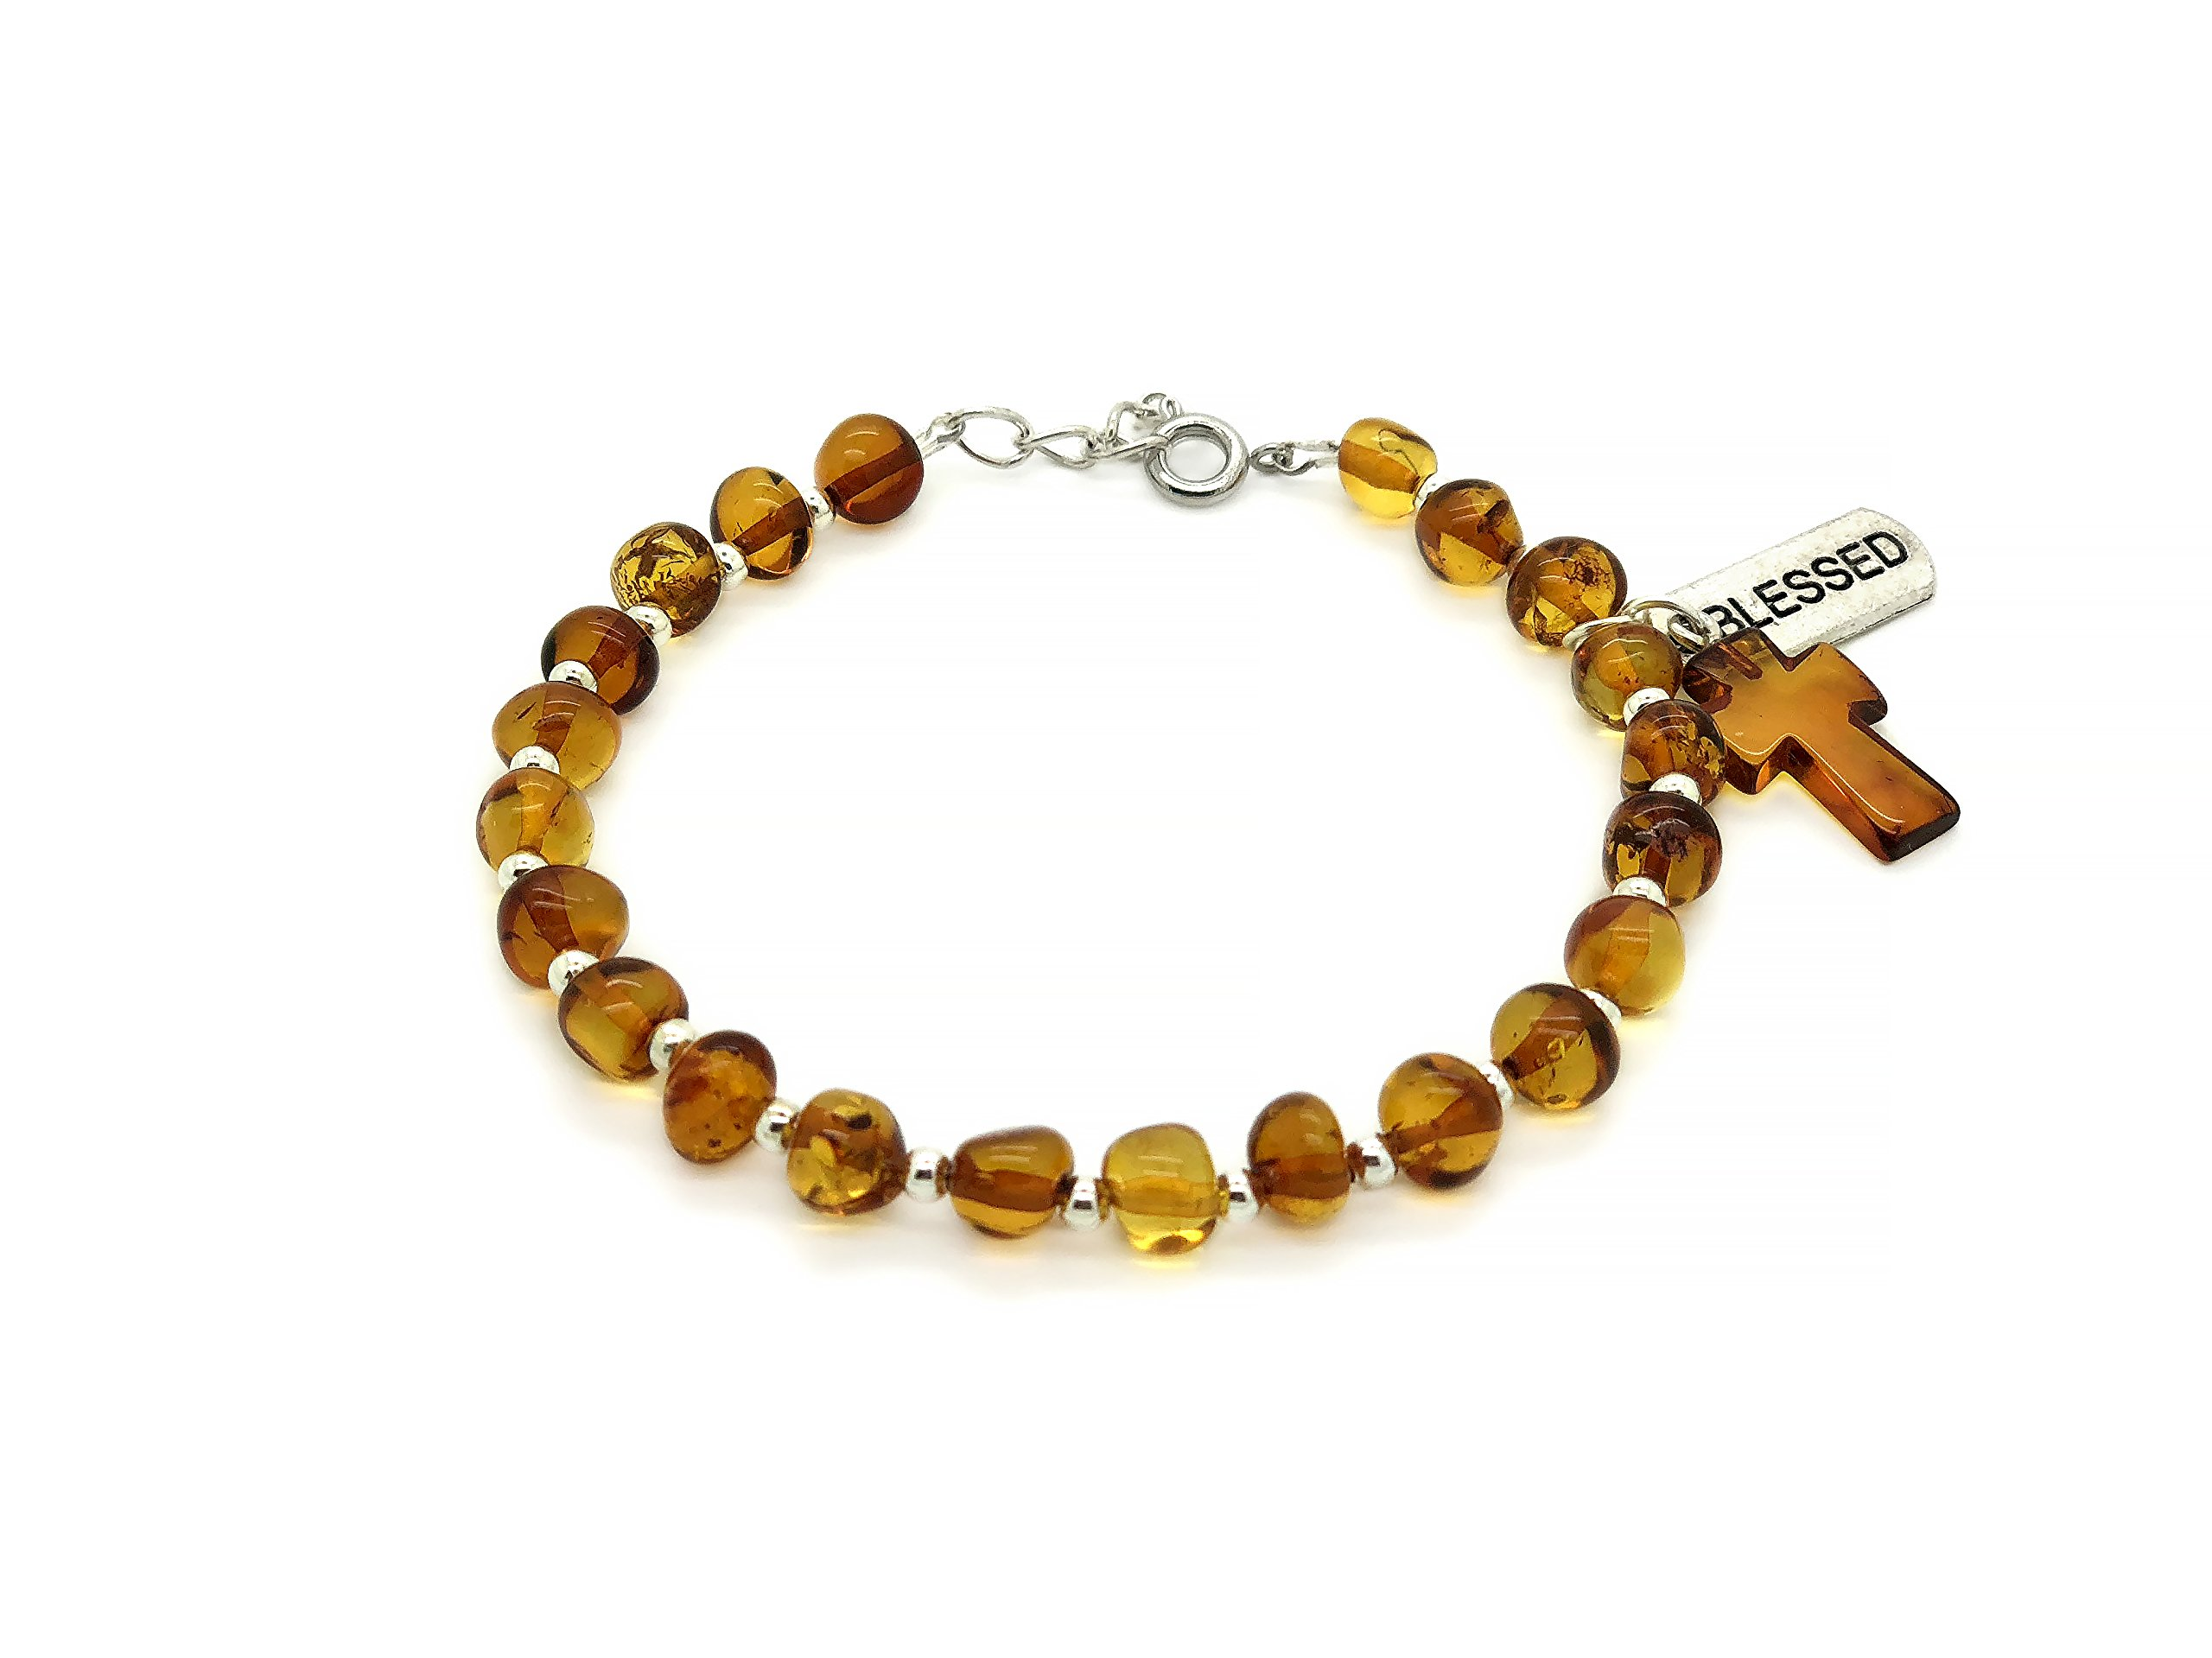 Genuine Cognac Amber Strand Bracelet with Amber Cross and Blessed Lucky Charm.